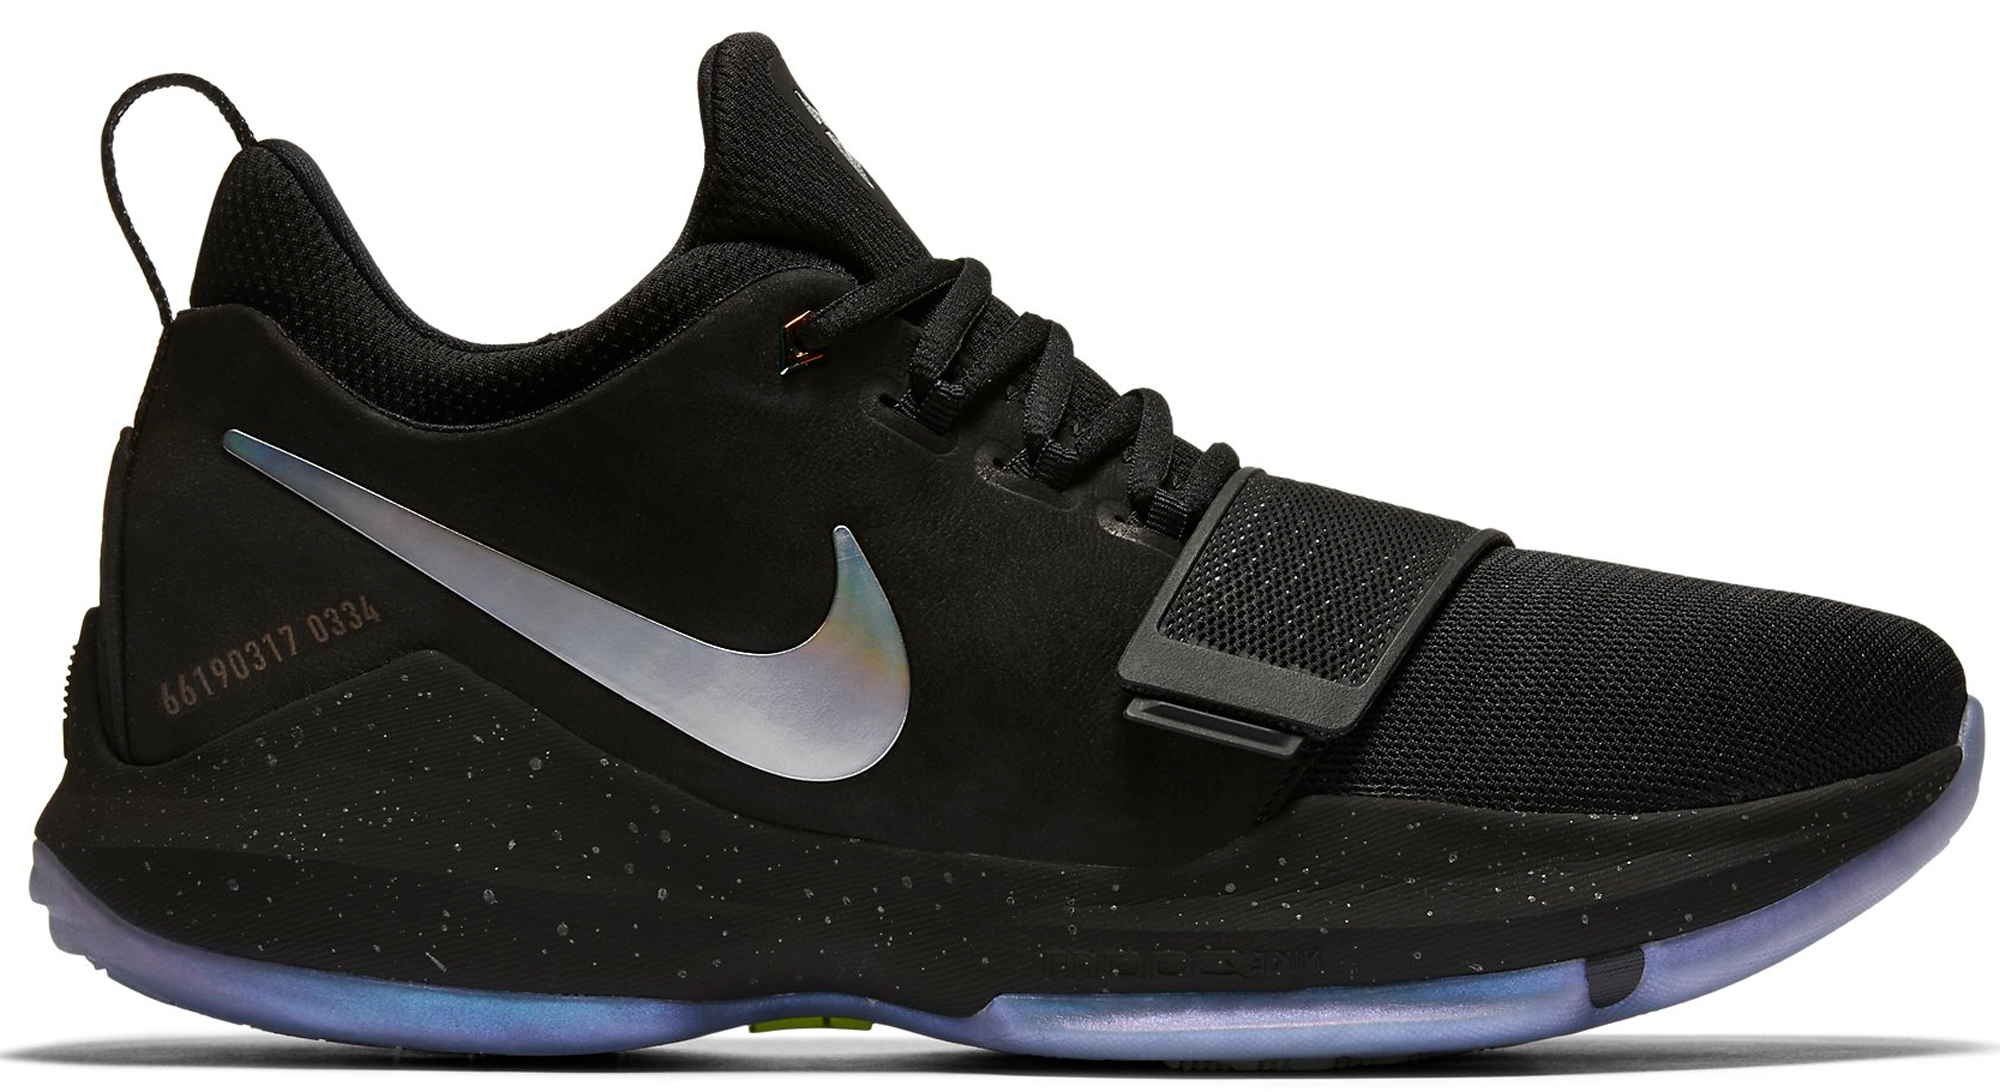 competitive price 387c2 08b20 Nike PG 1 Prototype All Star - StockX News